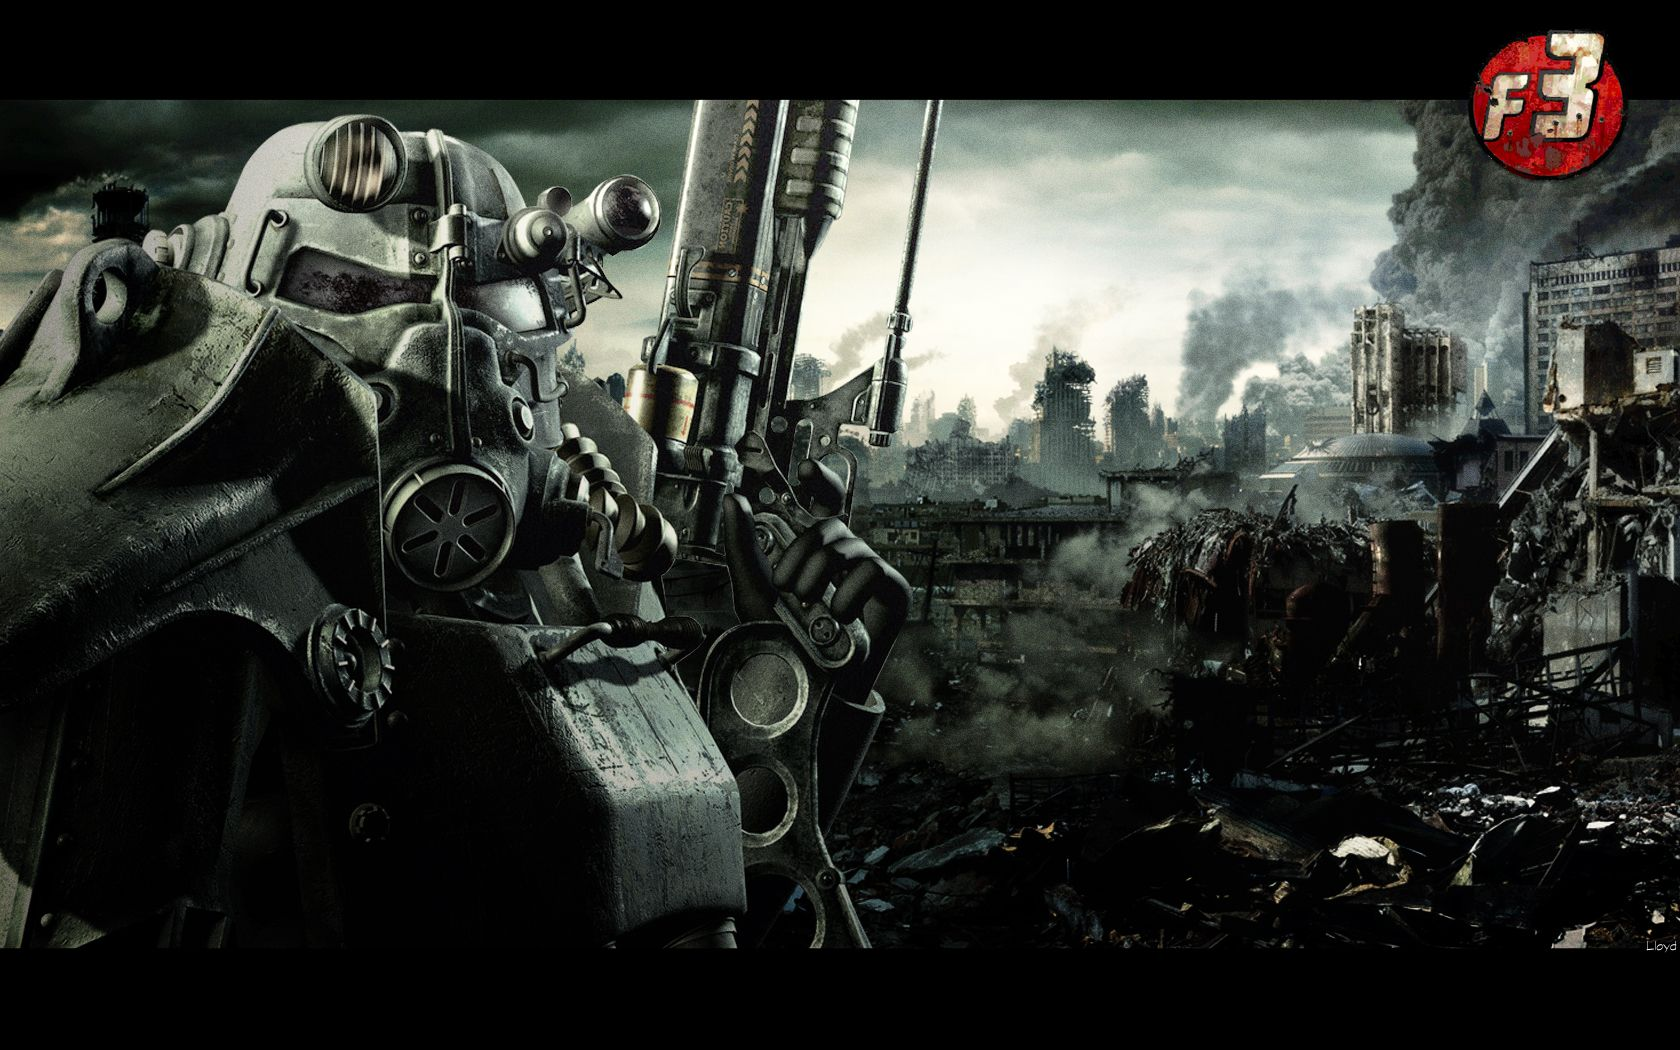 Fallout 3 Wallpaper By Igotgame1075 On Deviantart Fallout 3 Wallpaper Fallout 3 Fallout Wallpaper